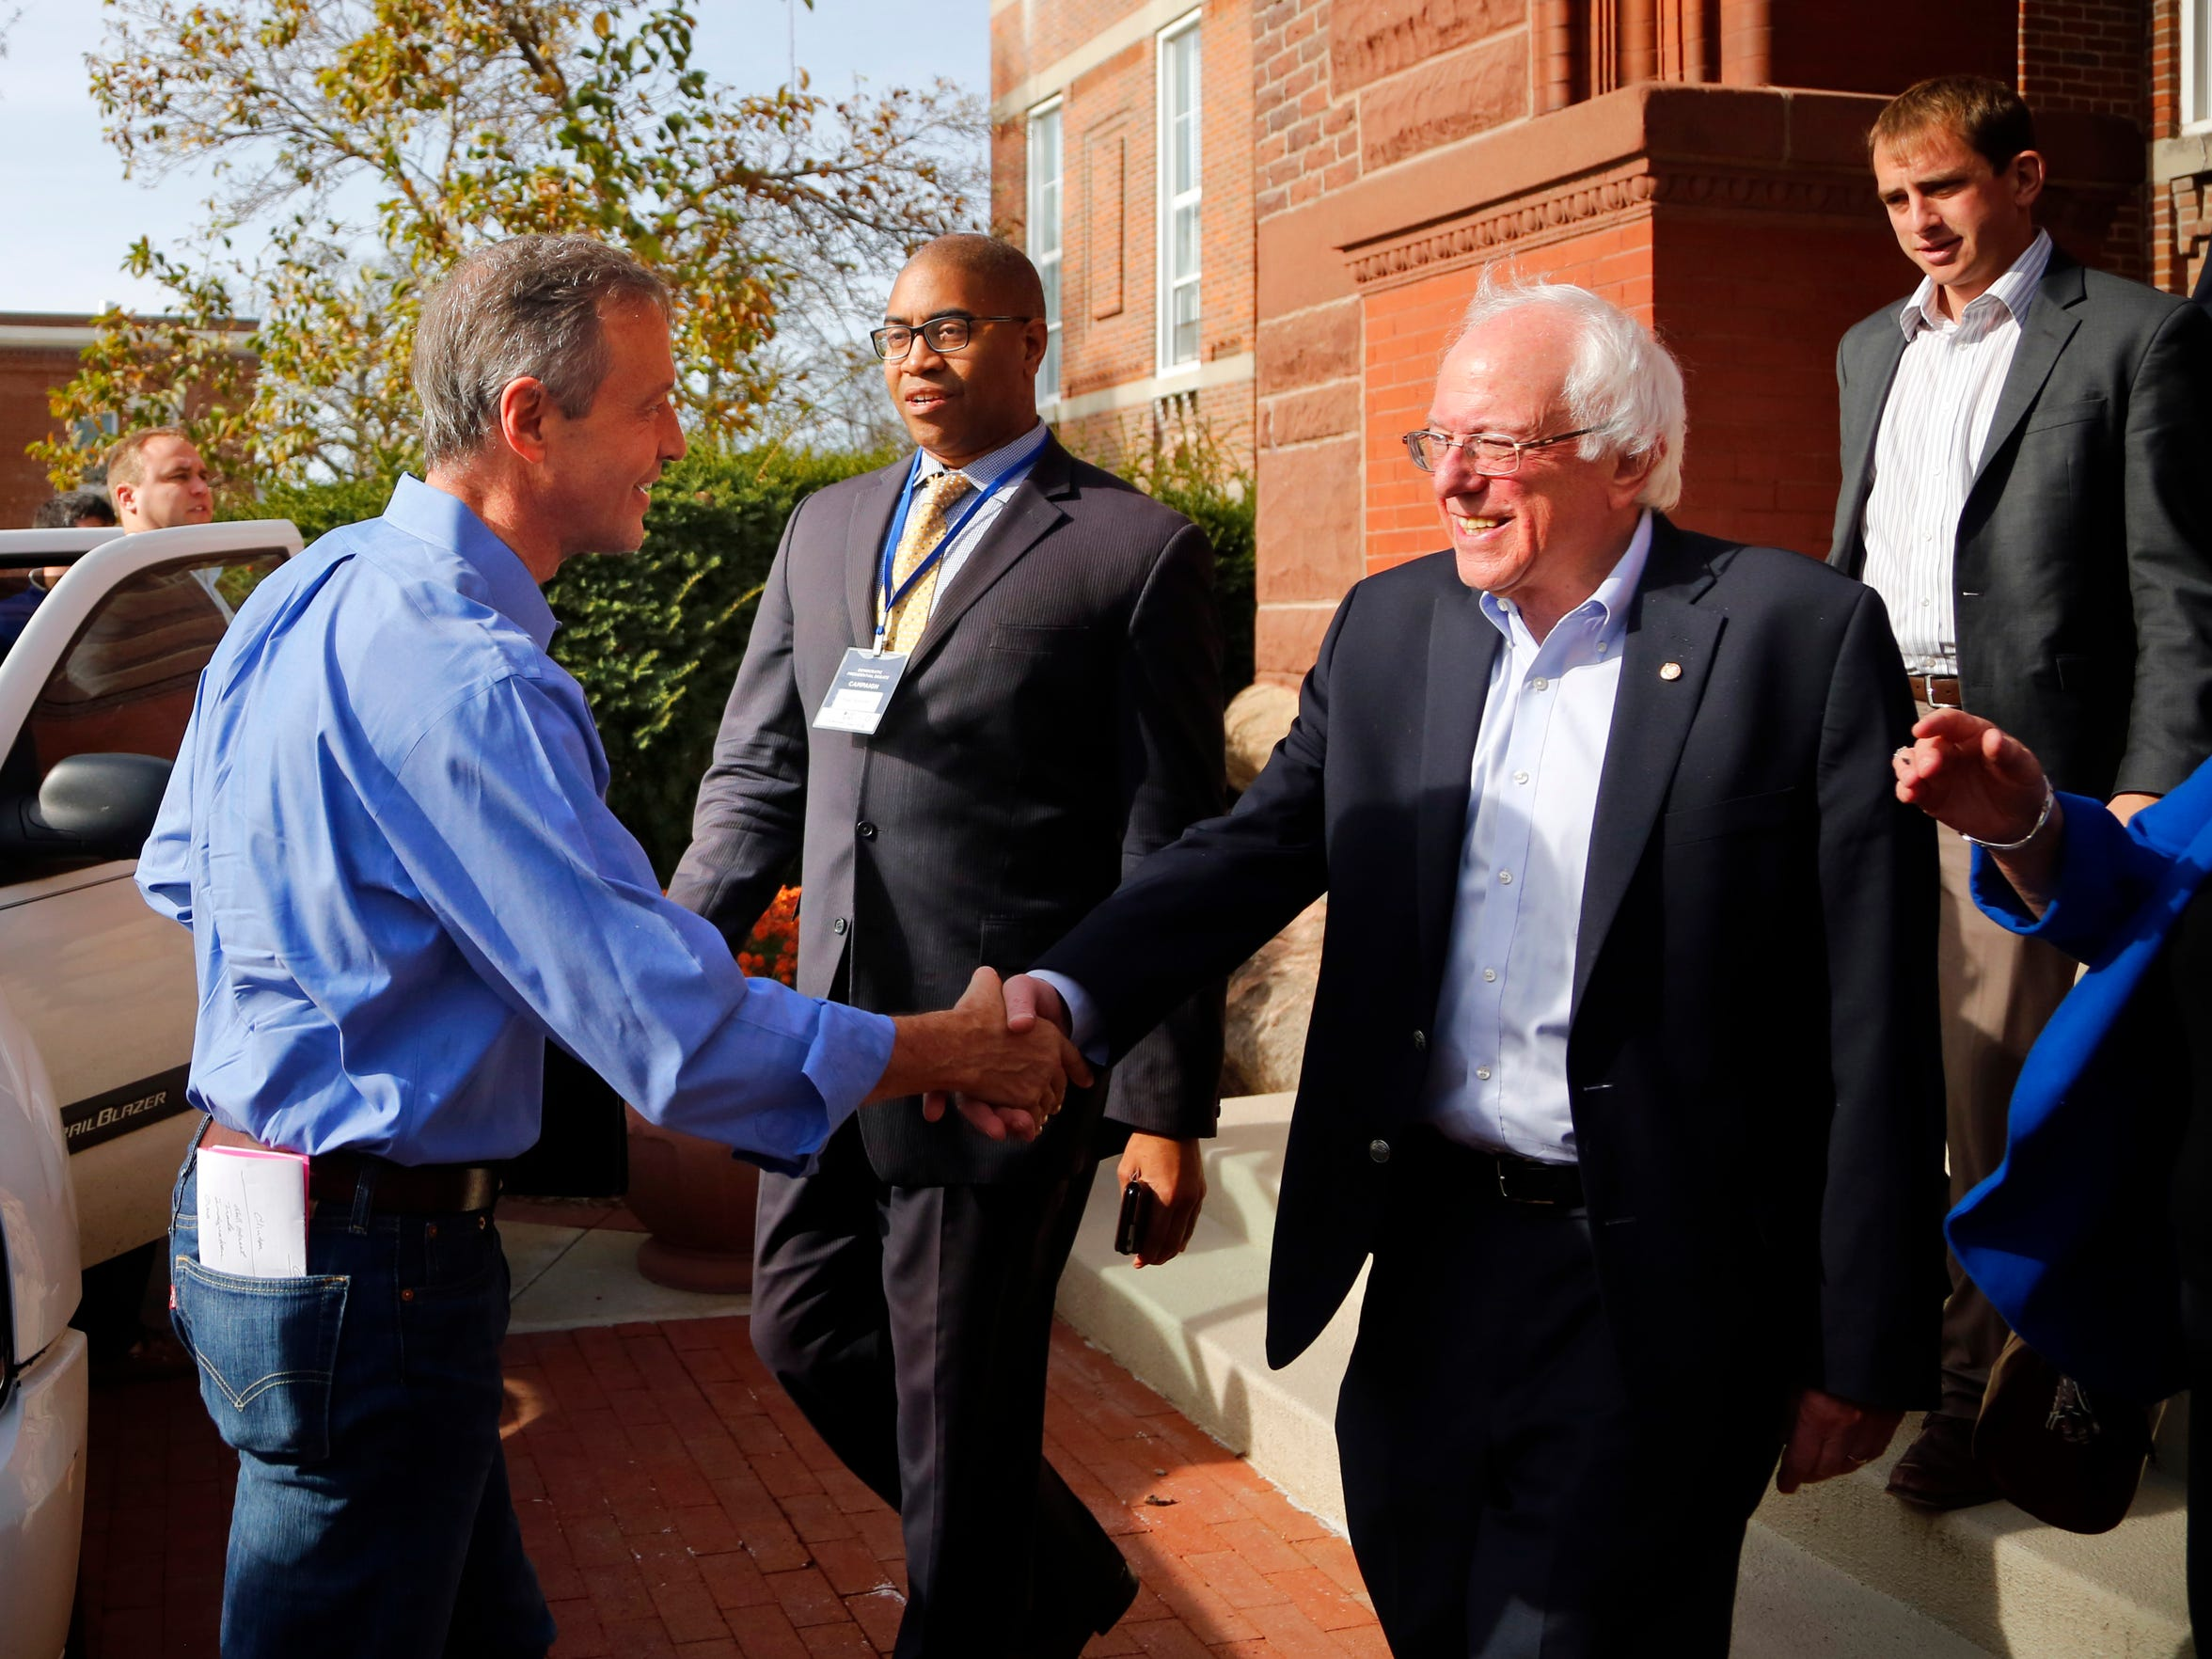 Democratic presidential candidates former Maryland Gov. Martin O'Malley and Sen. Bernie Sanders, I-Vt., shake hands outside Sheslow Auditorium on the Drake University campus before a Democratic presidential primary debate, Saturday, Nov. 14, 2015.